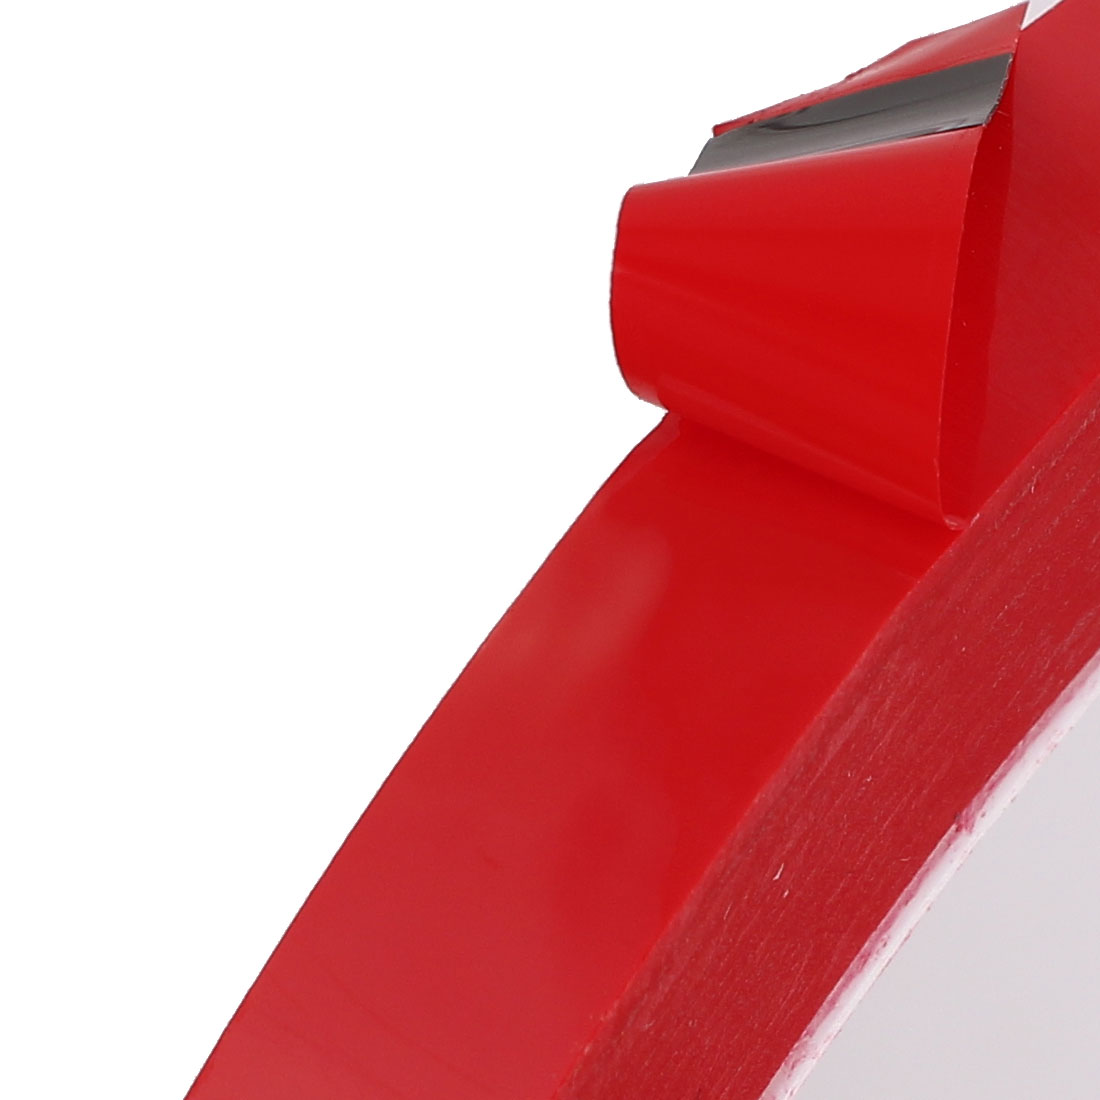 8mm x 66M Marking Tool PVC Electrical Insulation Floor Warning Tap Red - image 1 de 3